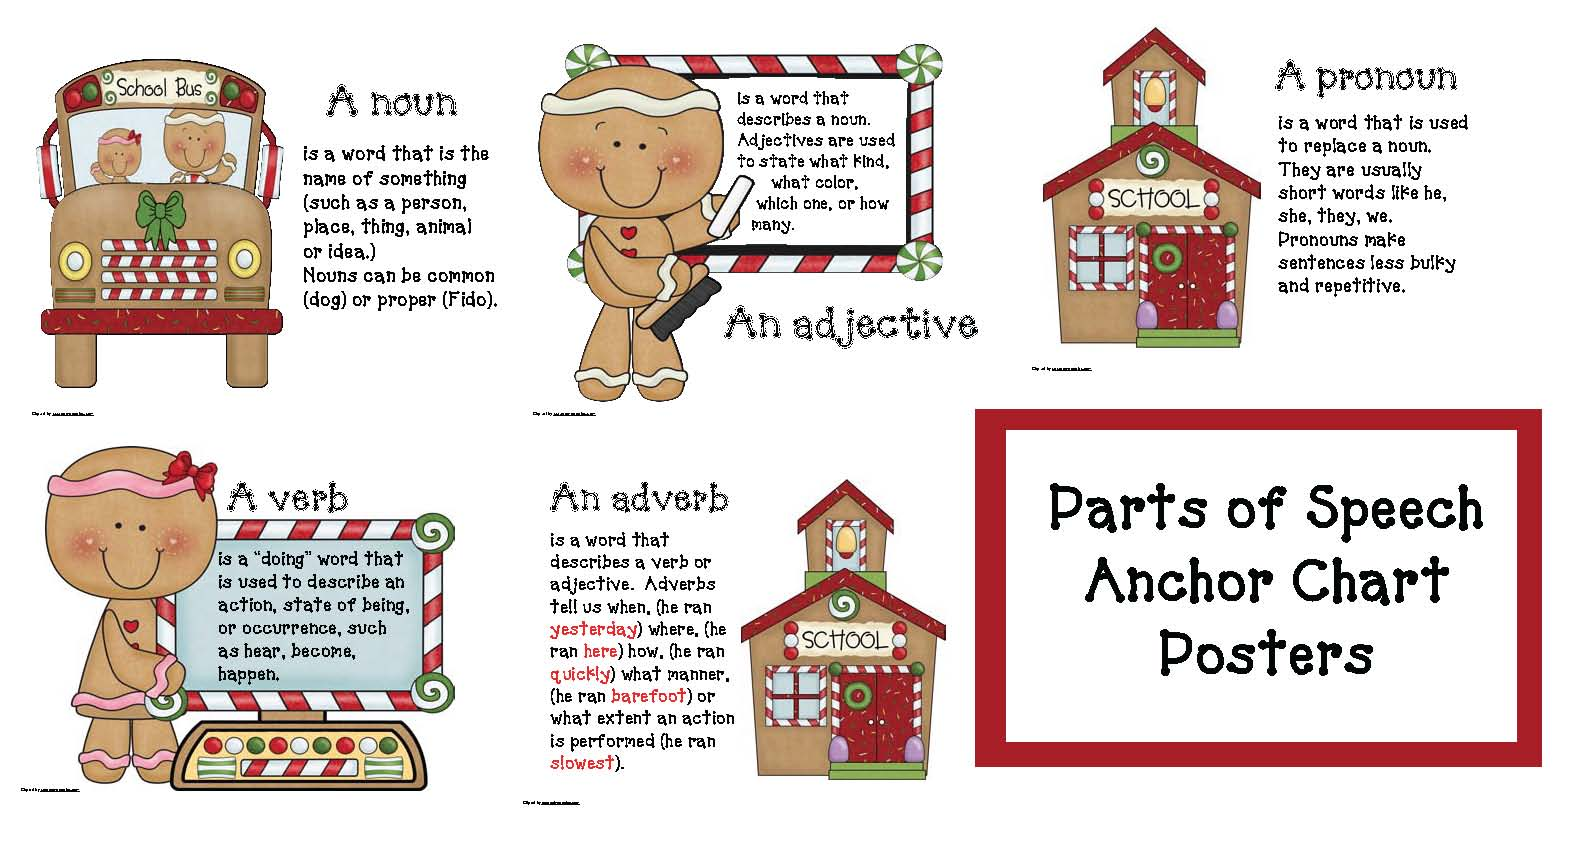 retelling a story activities, sequencing a story activiteis, gingerbread activities, gingerbread crafts, activities for the gingerbread man story, fox crafts,